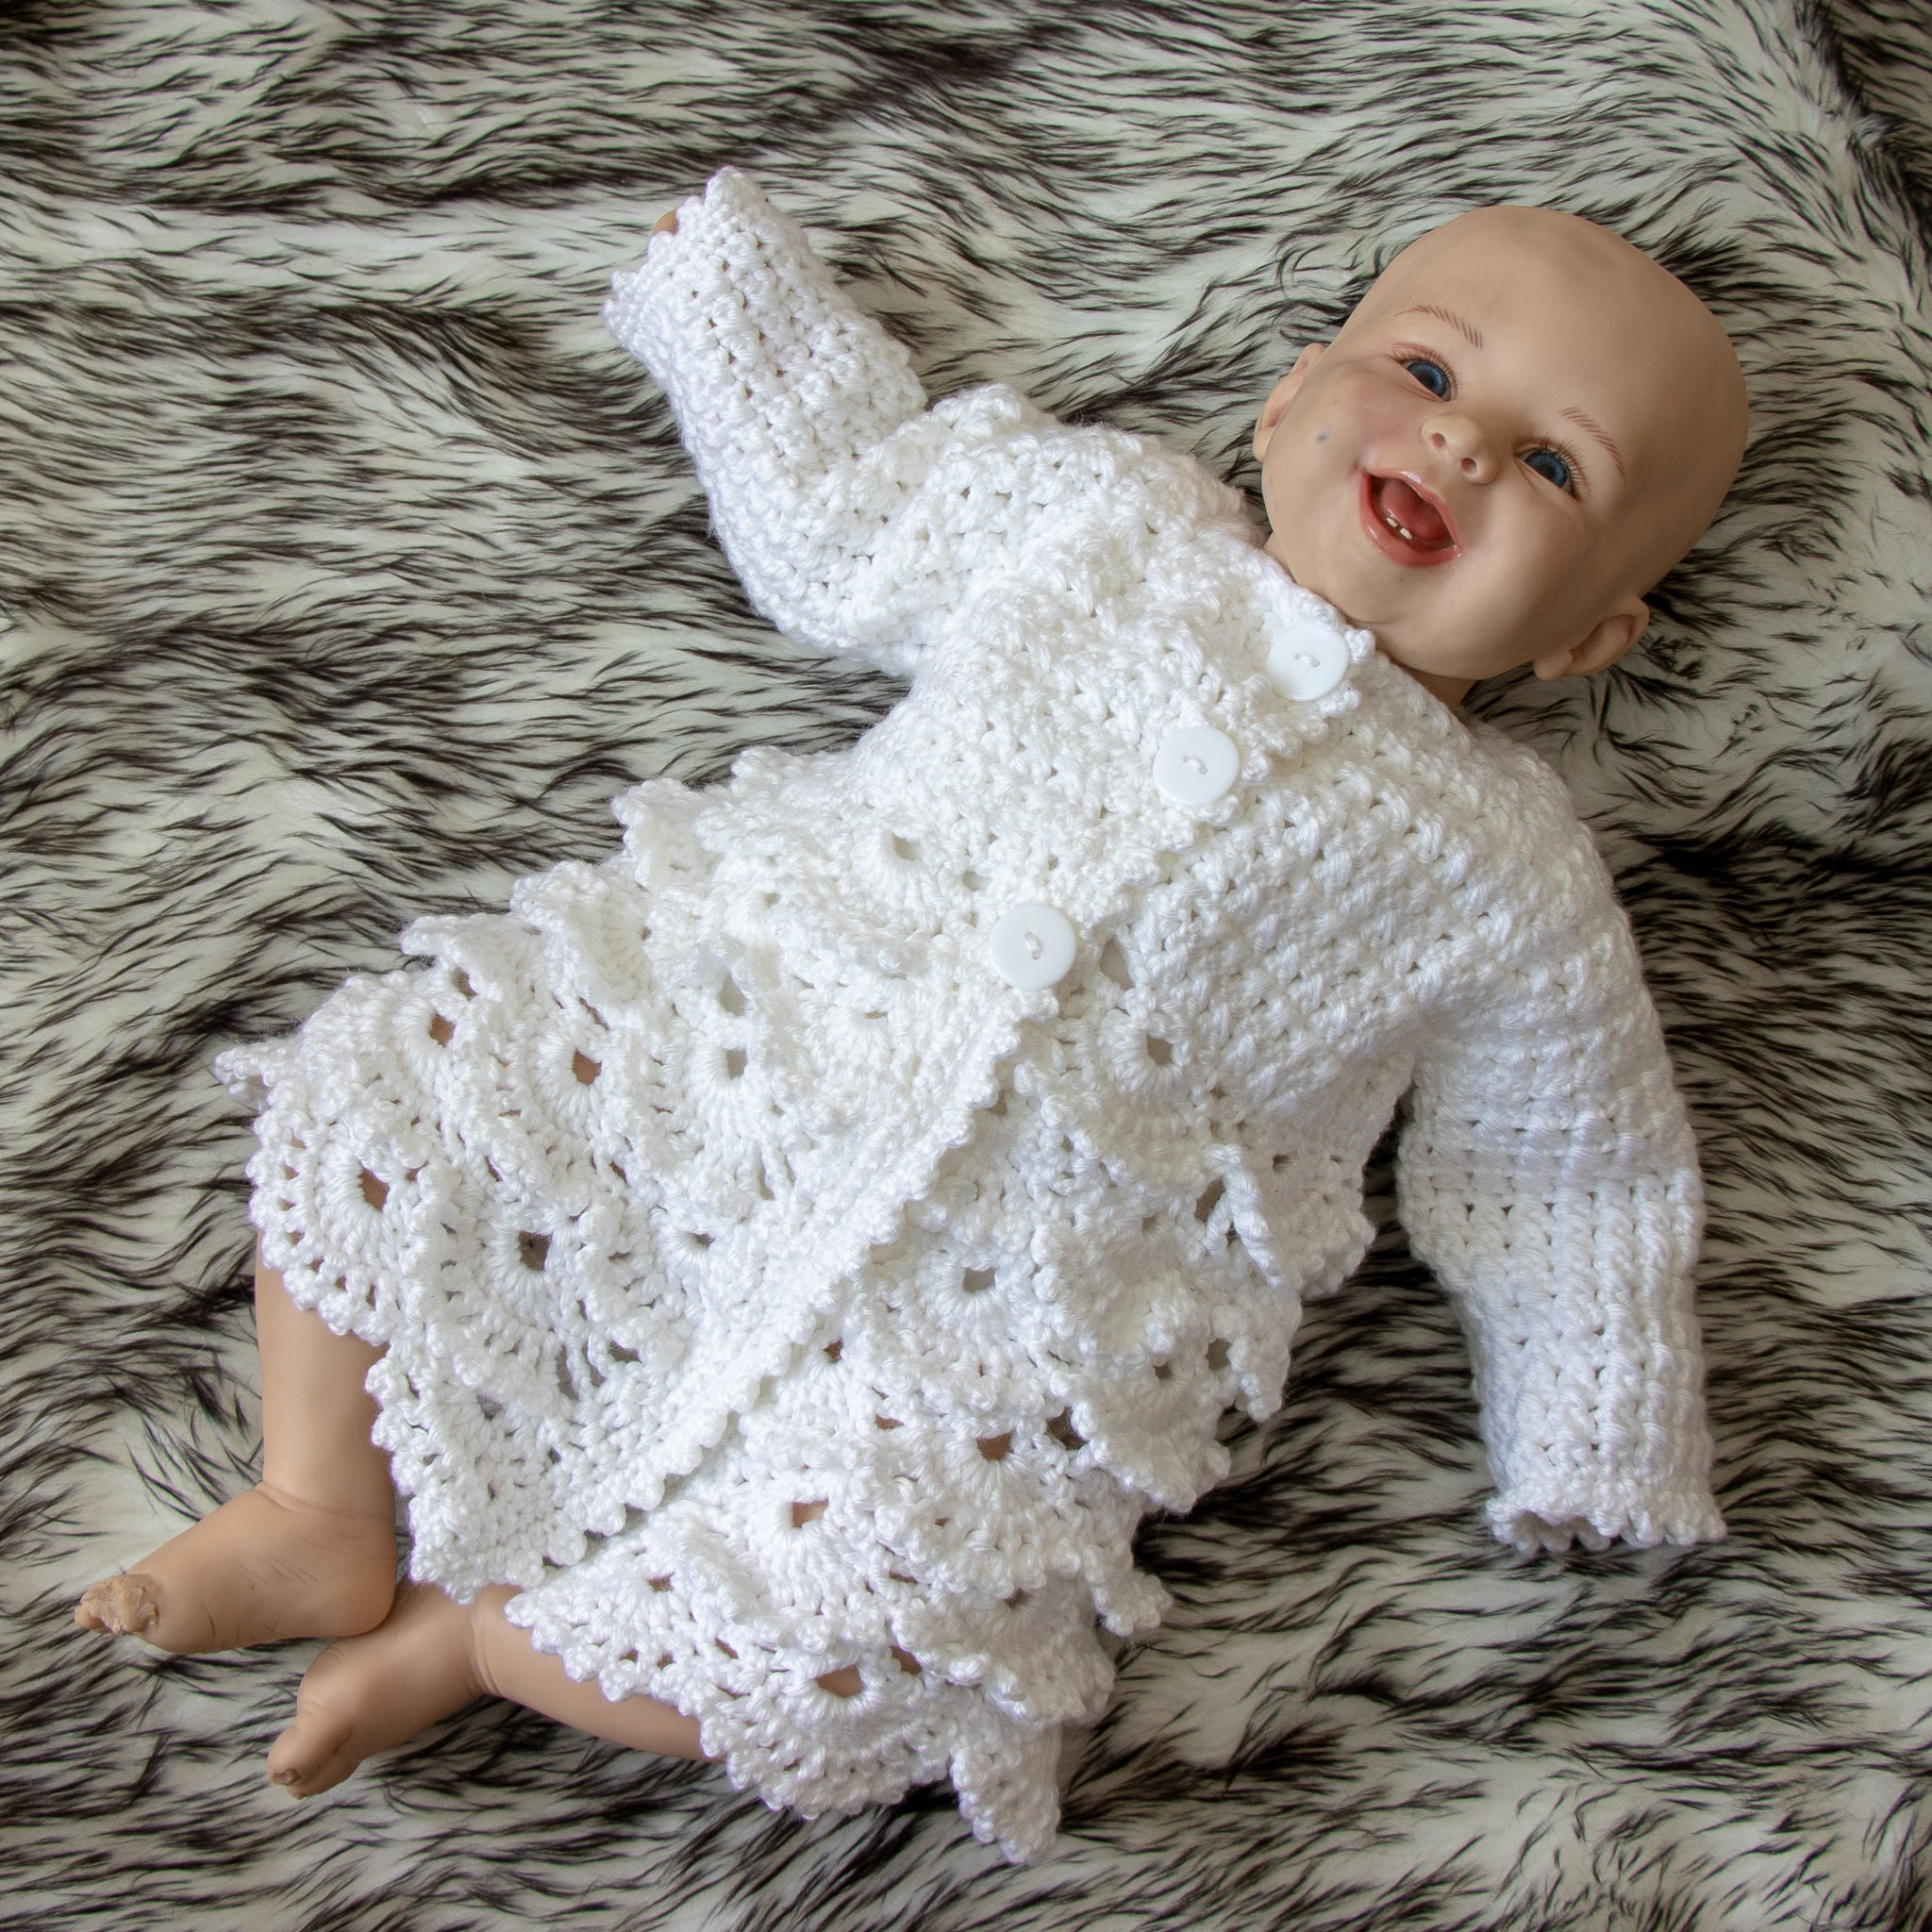 40b5f2f7c Crochet lace baby cardigan - Baby girl jacket - Matinee coat